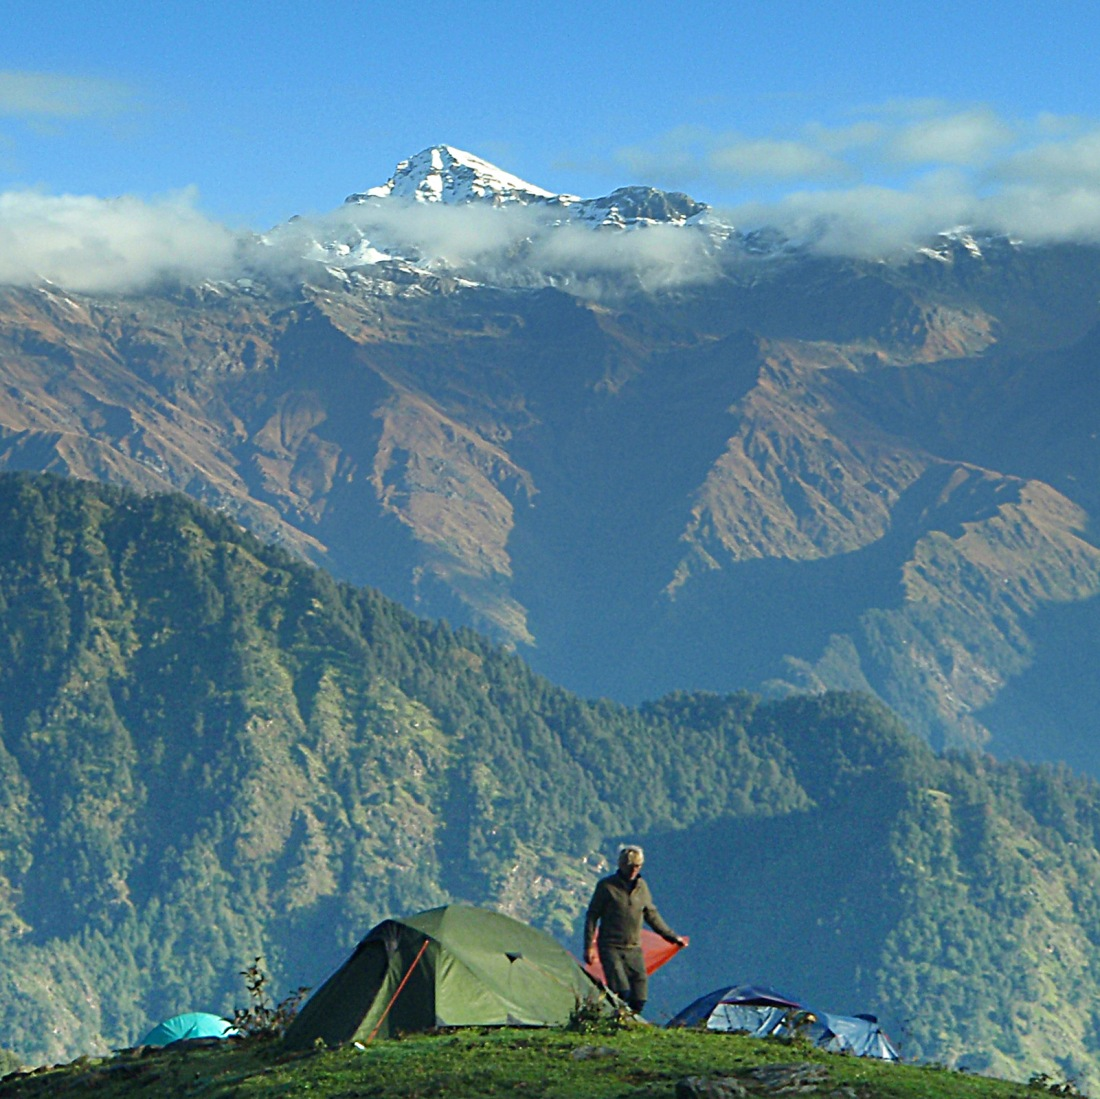 Steve at dawn at the campsite at Maggu, Uttarakhand, India. Trek Day 13